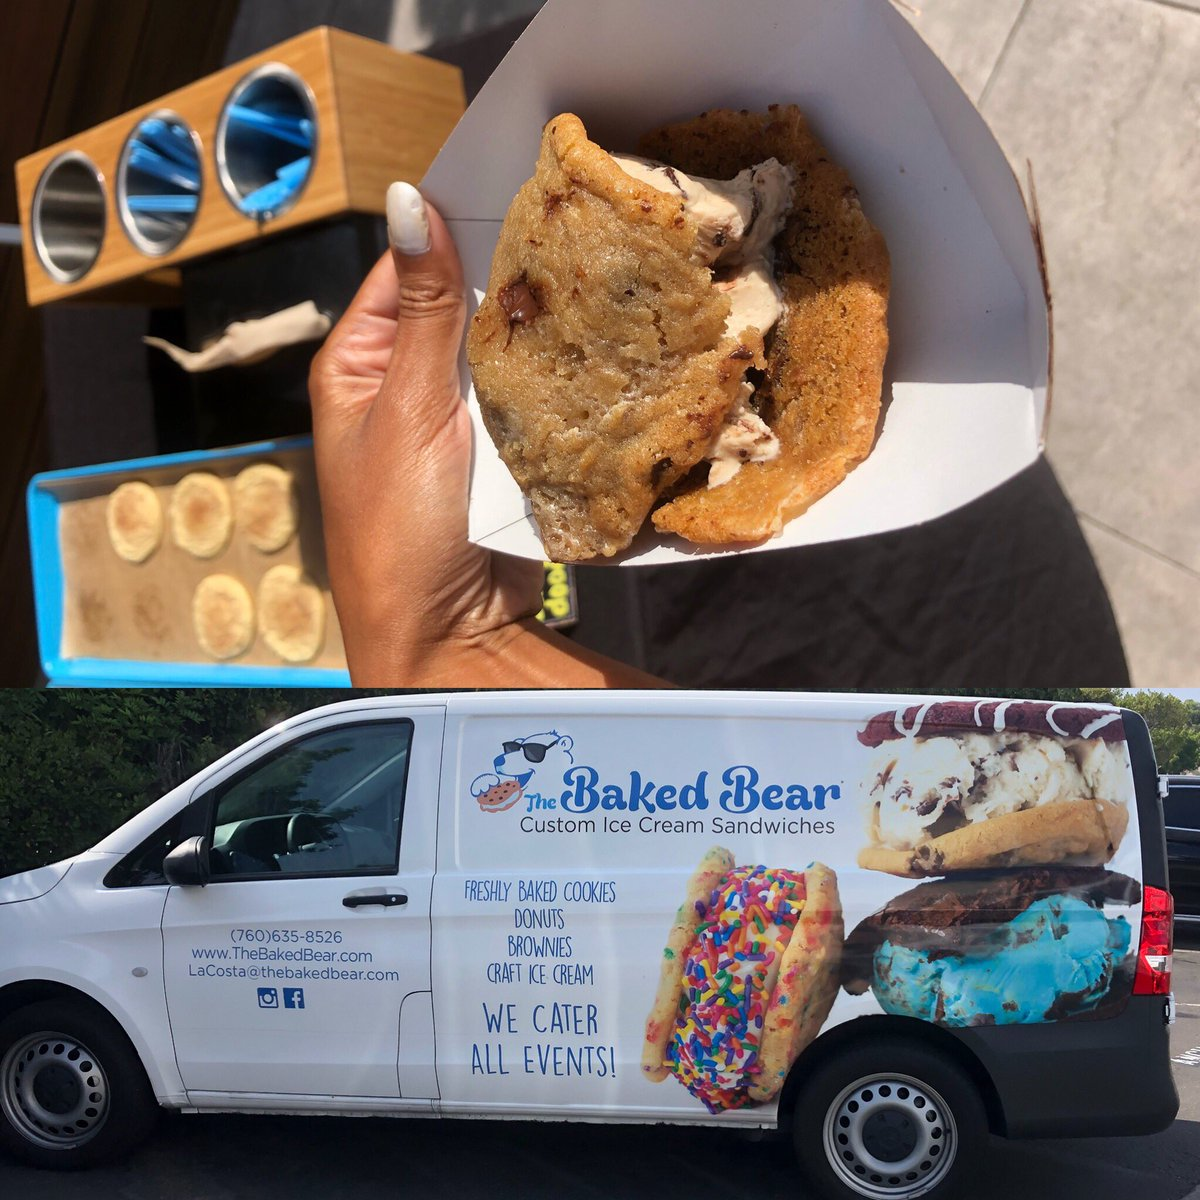 A yummy break @CBS8 So great to have #BakedBear #IceCream set up a full ice cream bar with cookies and toppings!🍨🍪 https://t.co/yh89wgSrVr